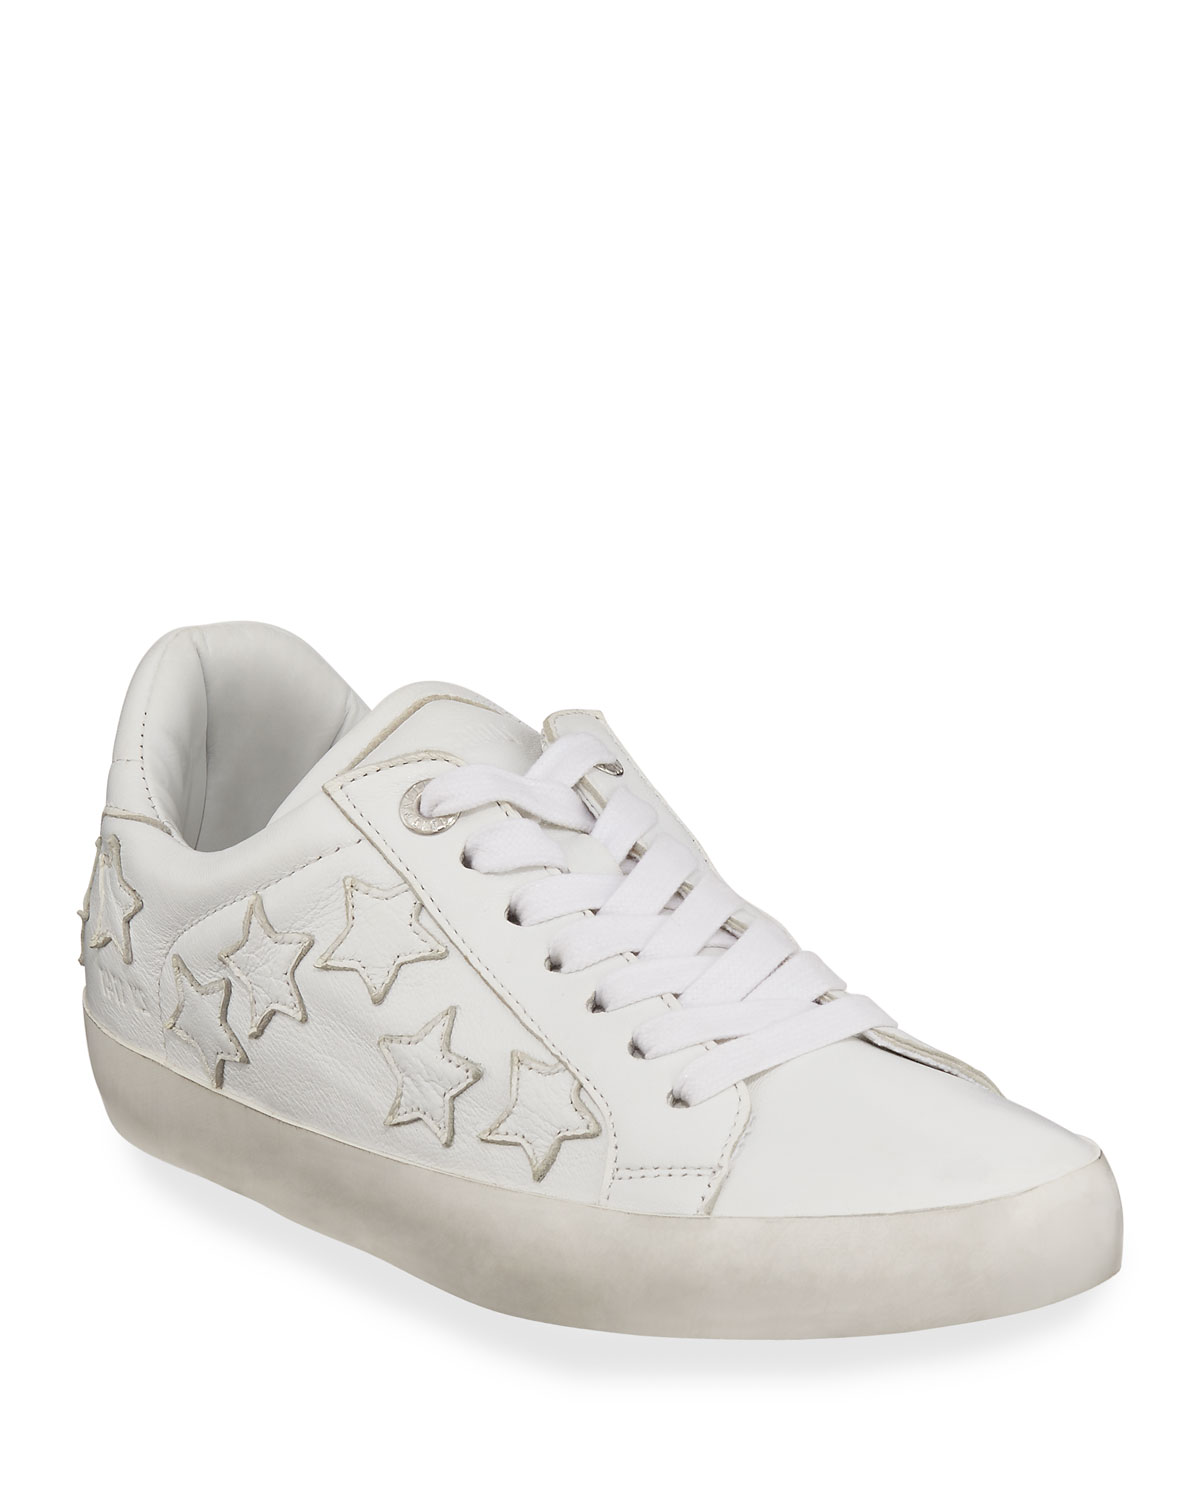 Zadig Stars Leather Sneakers by Zadig & Voltaire